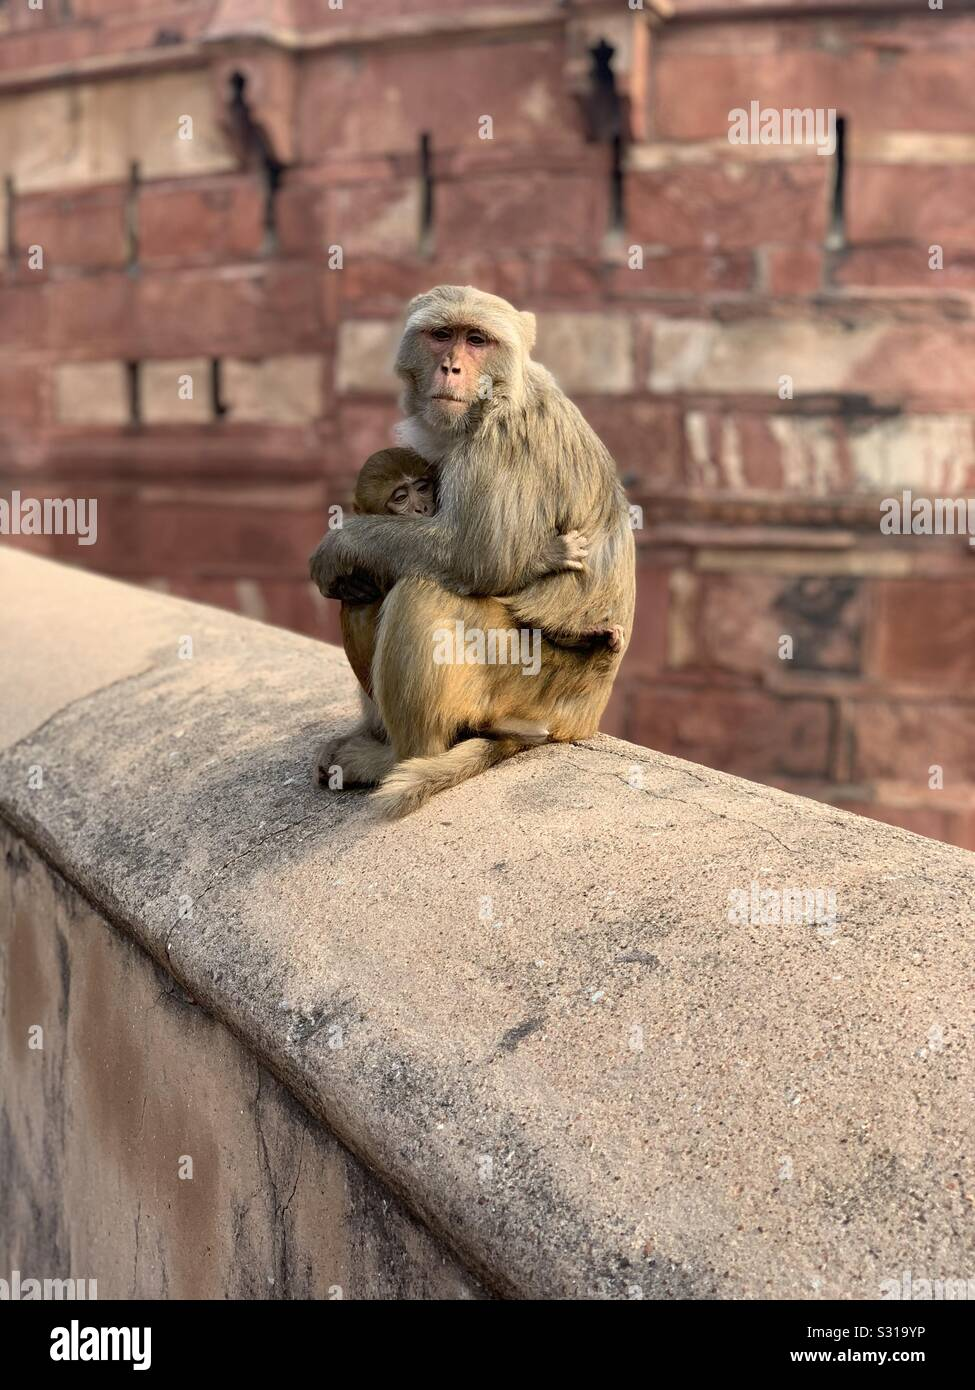 A mother and child rhesus macaque sitting on a wall in India Stock Photo